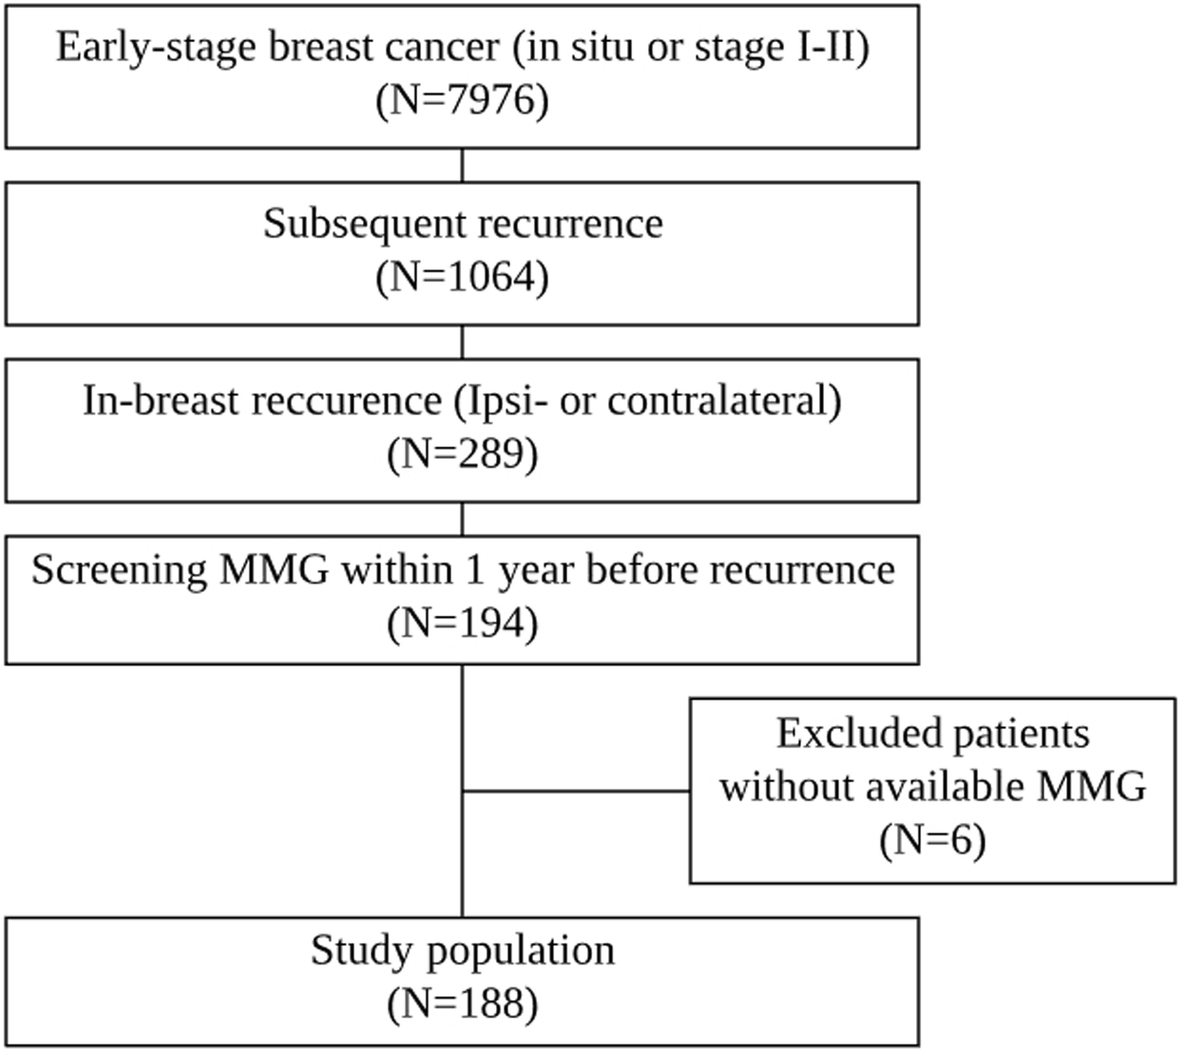 Screening mammography for second breast cancers in women